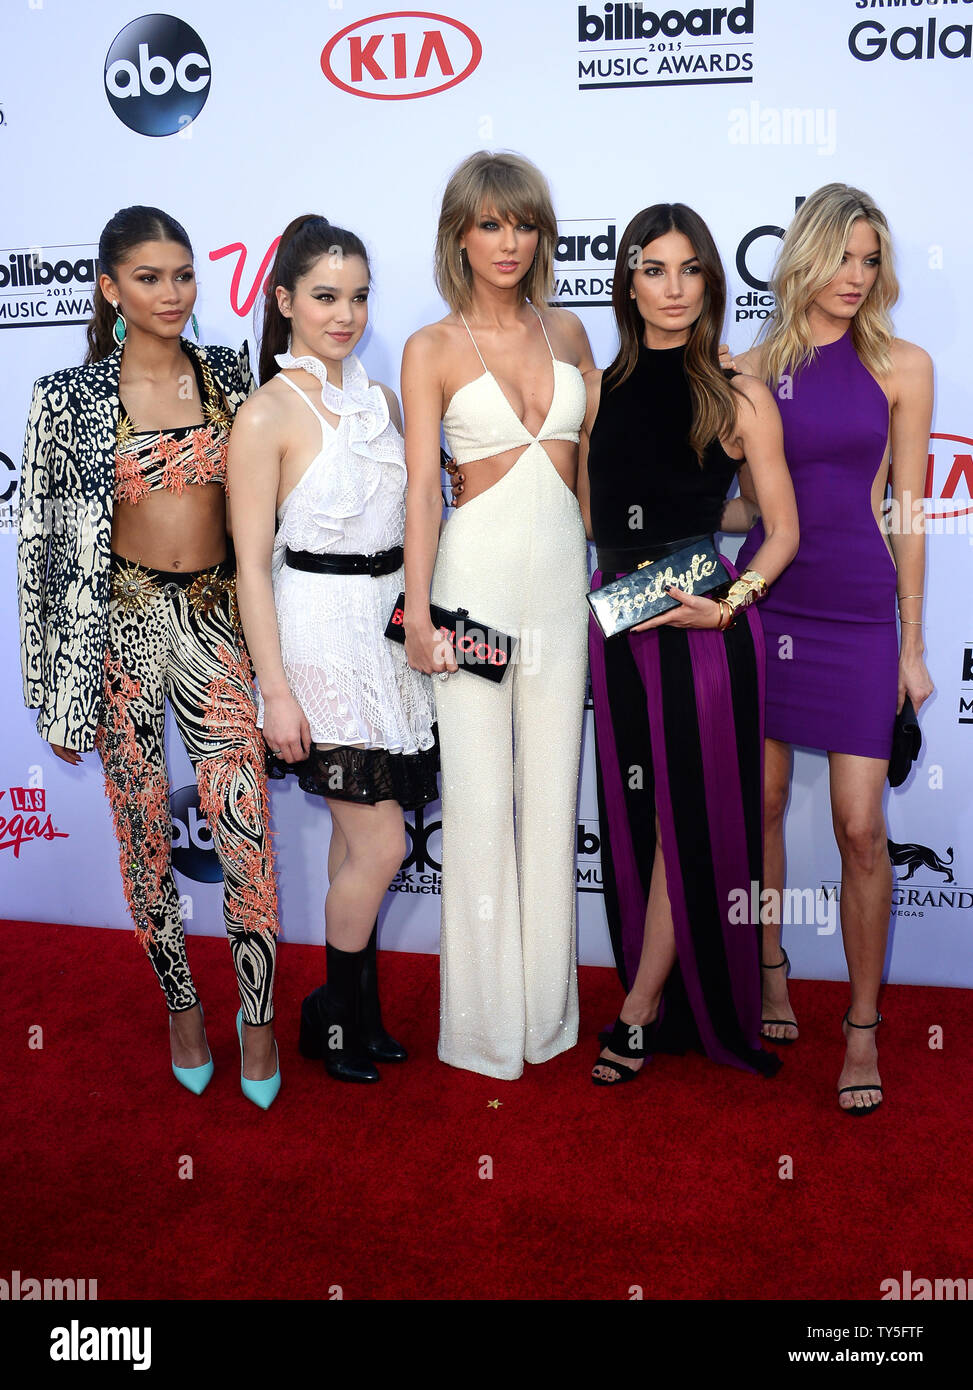 L R Zendaya Hailee Steinfeld Taylor Swift Lily Aldridge And Martha Hunt Attend The Billboard Music Awards Held At The Mgm Grand Garden Arena In Las Vegas Nevada On May 17 2015 Photo